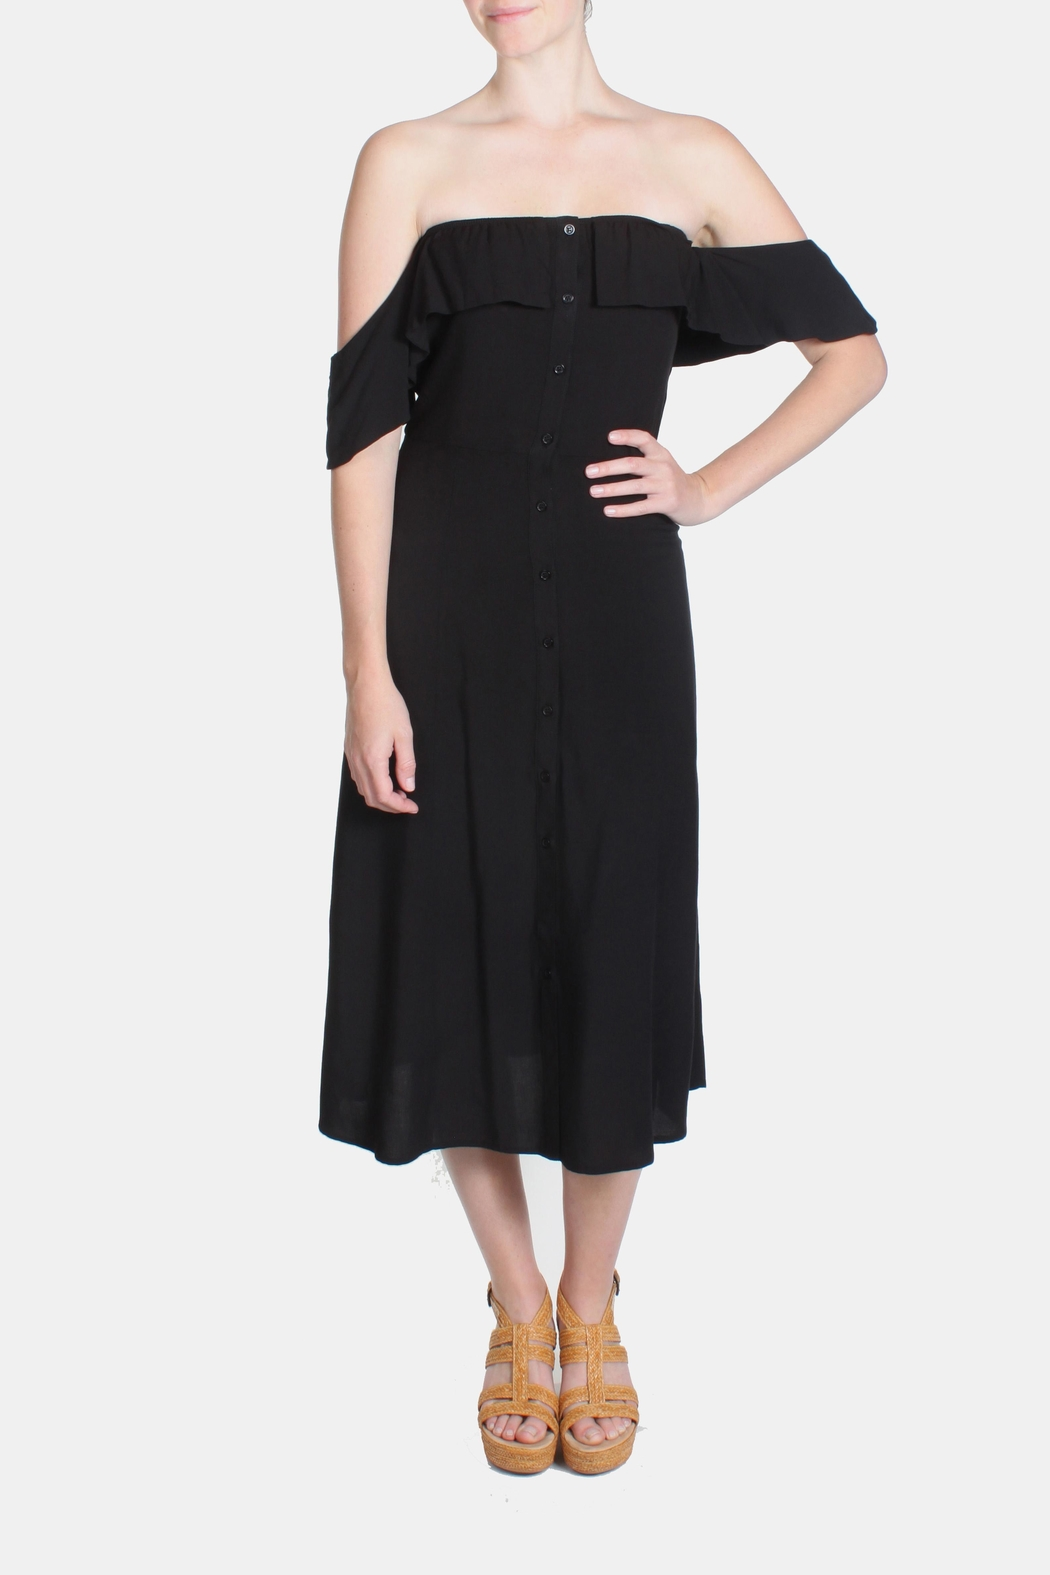 rokoko Black Off-Shoulder Dress - Front Full Image